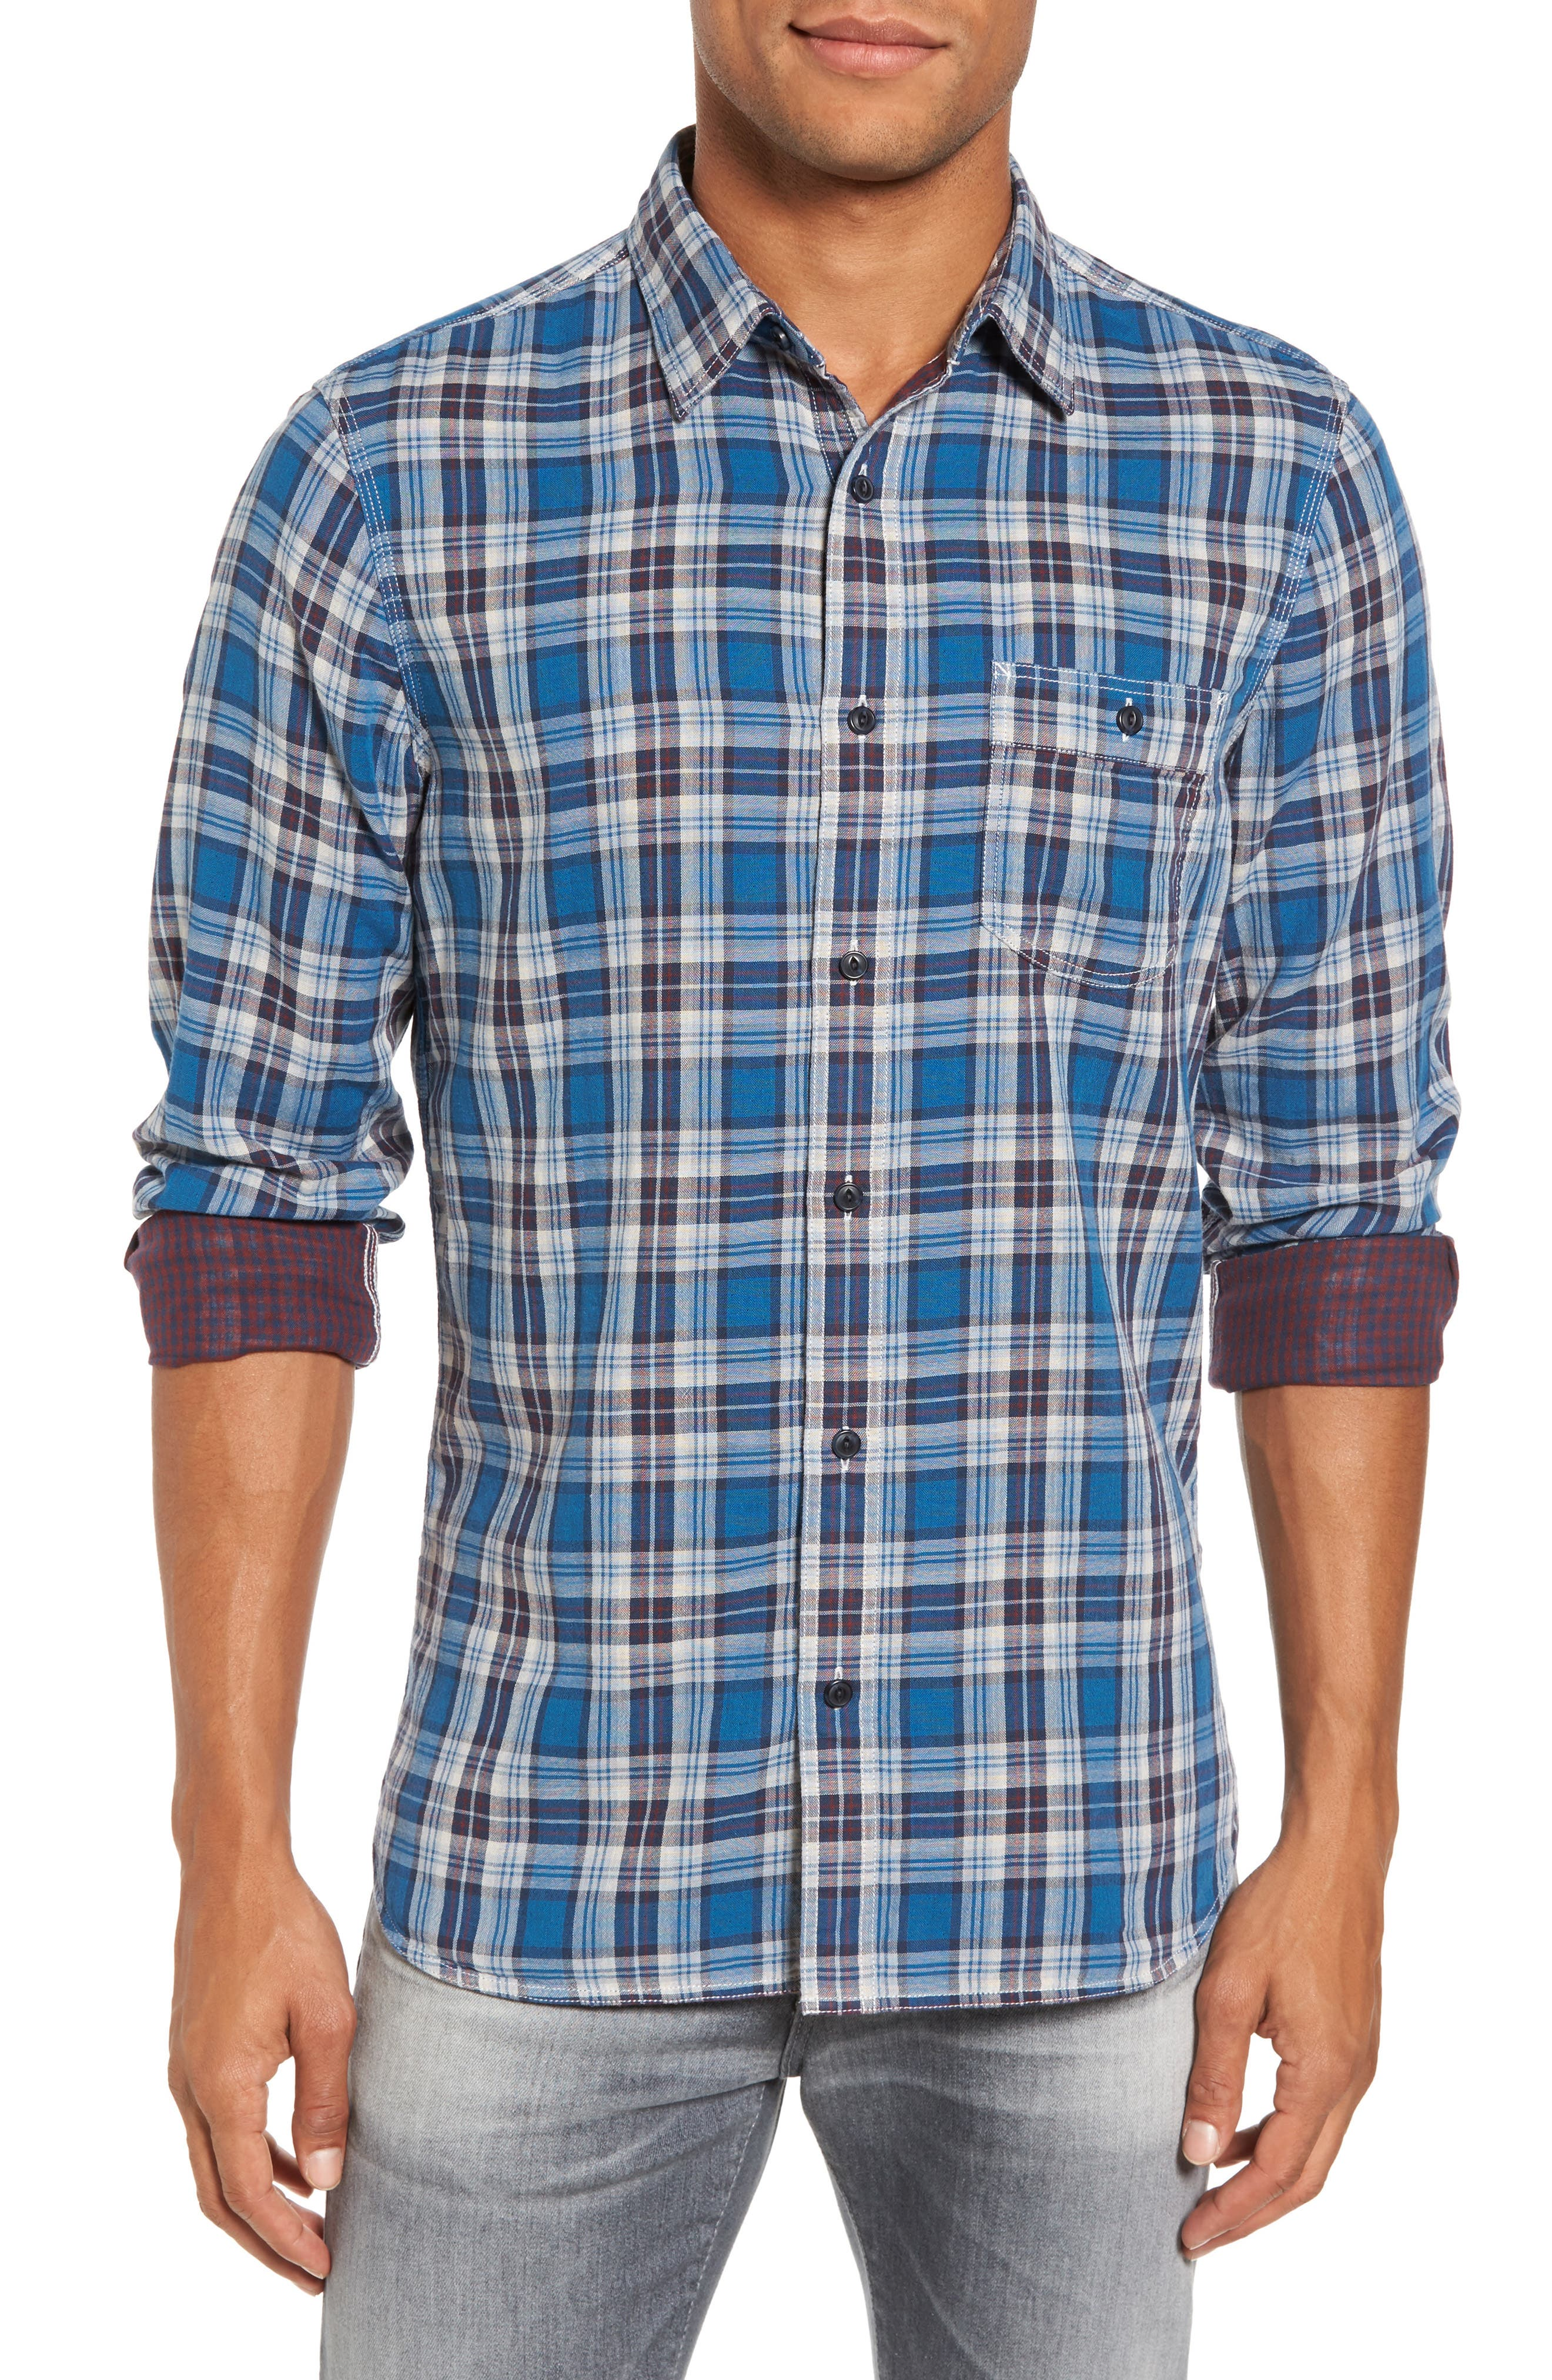 Workwear Duofold Plaid Sport Shirt,                         Main,                         color, Teal Ocean Ivory Plaid Duofold